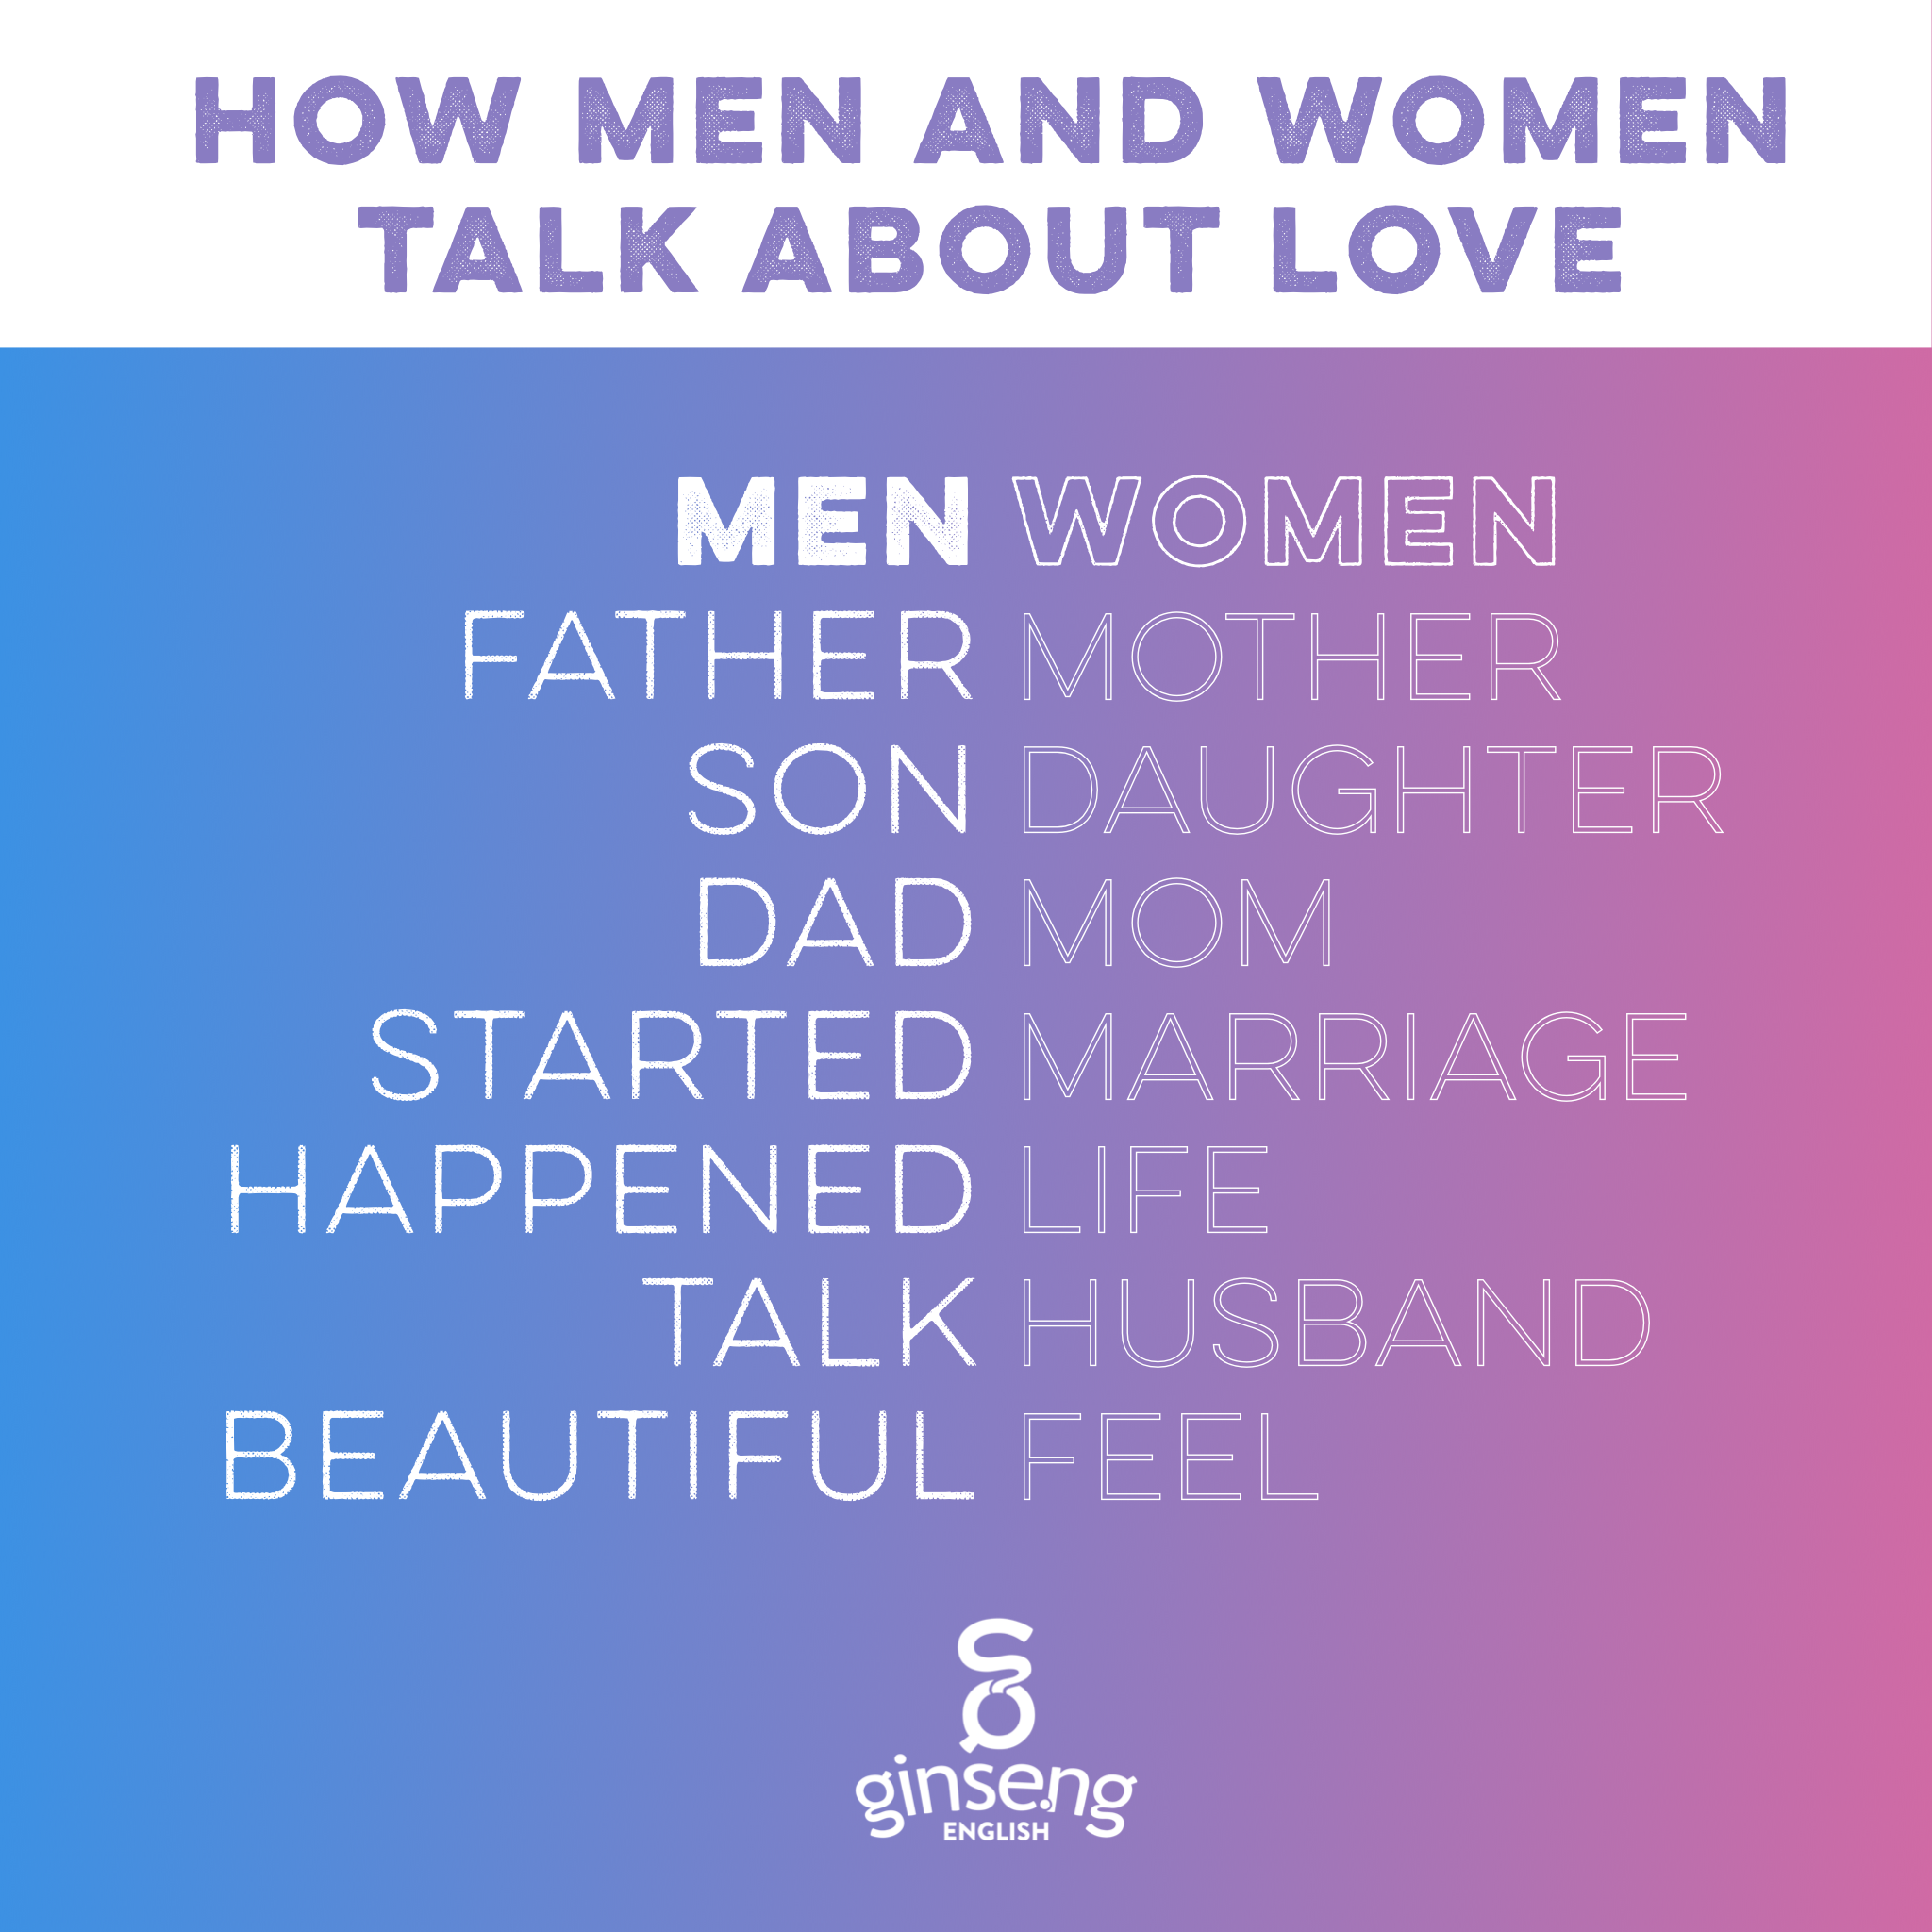 Common words men and women used to talk about love.